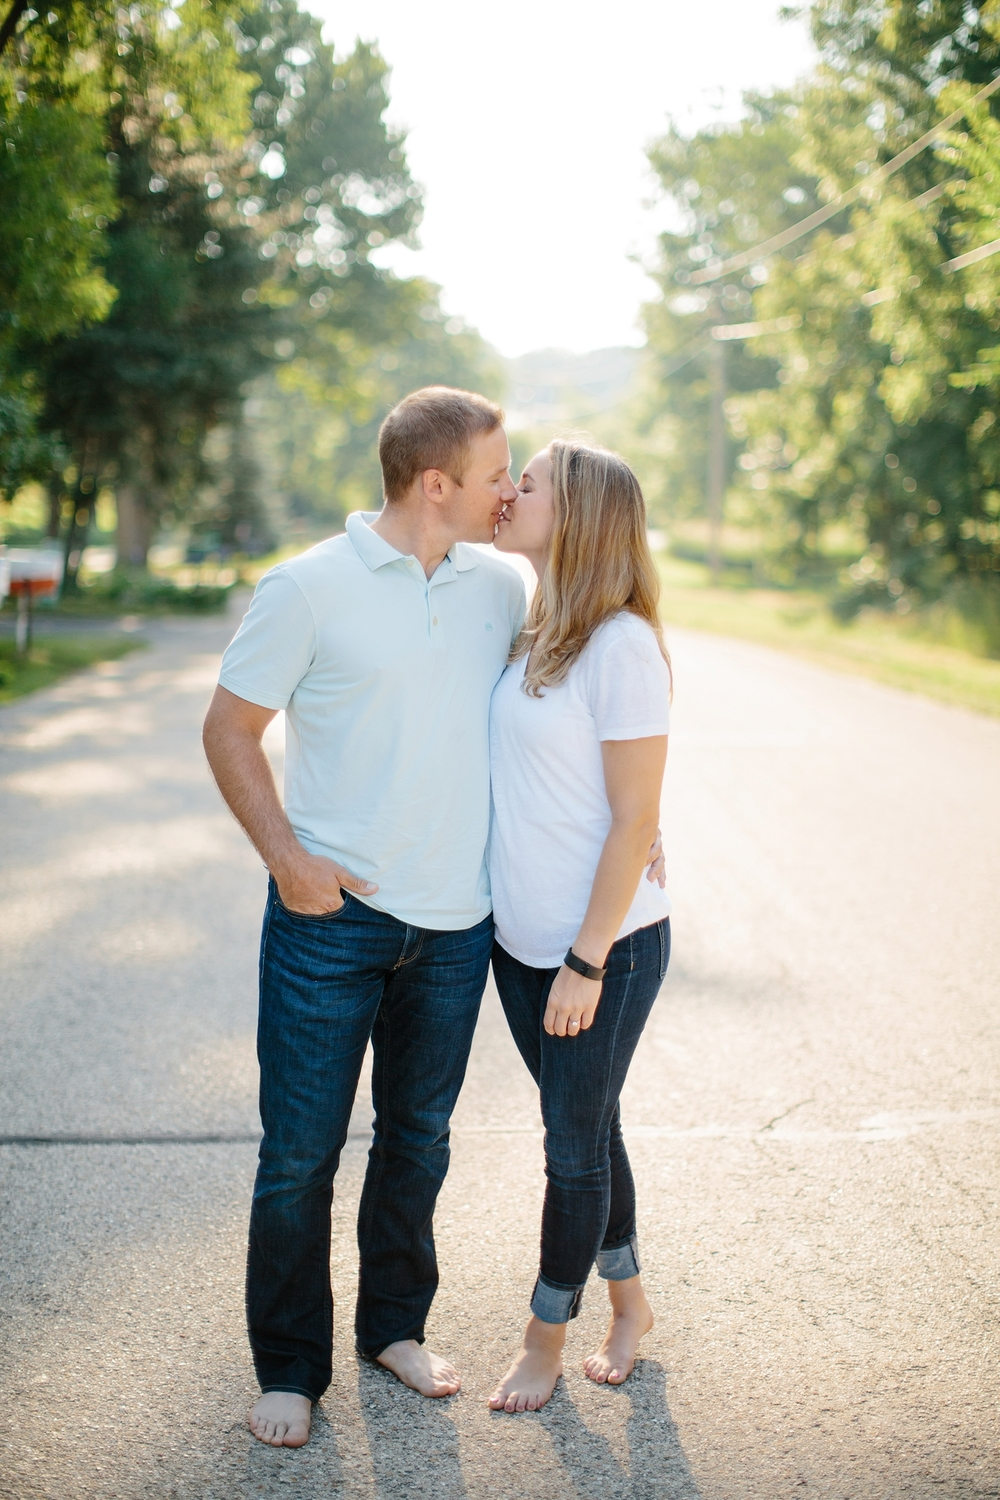 SunriseEngagementSession_0015.jpg